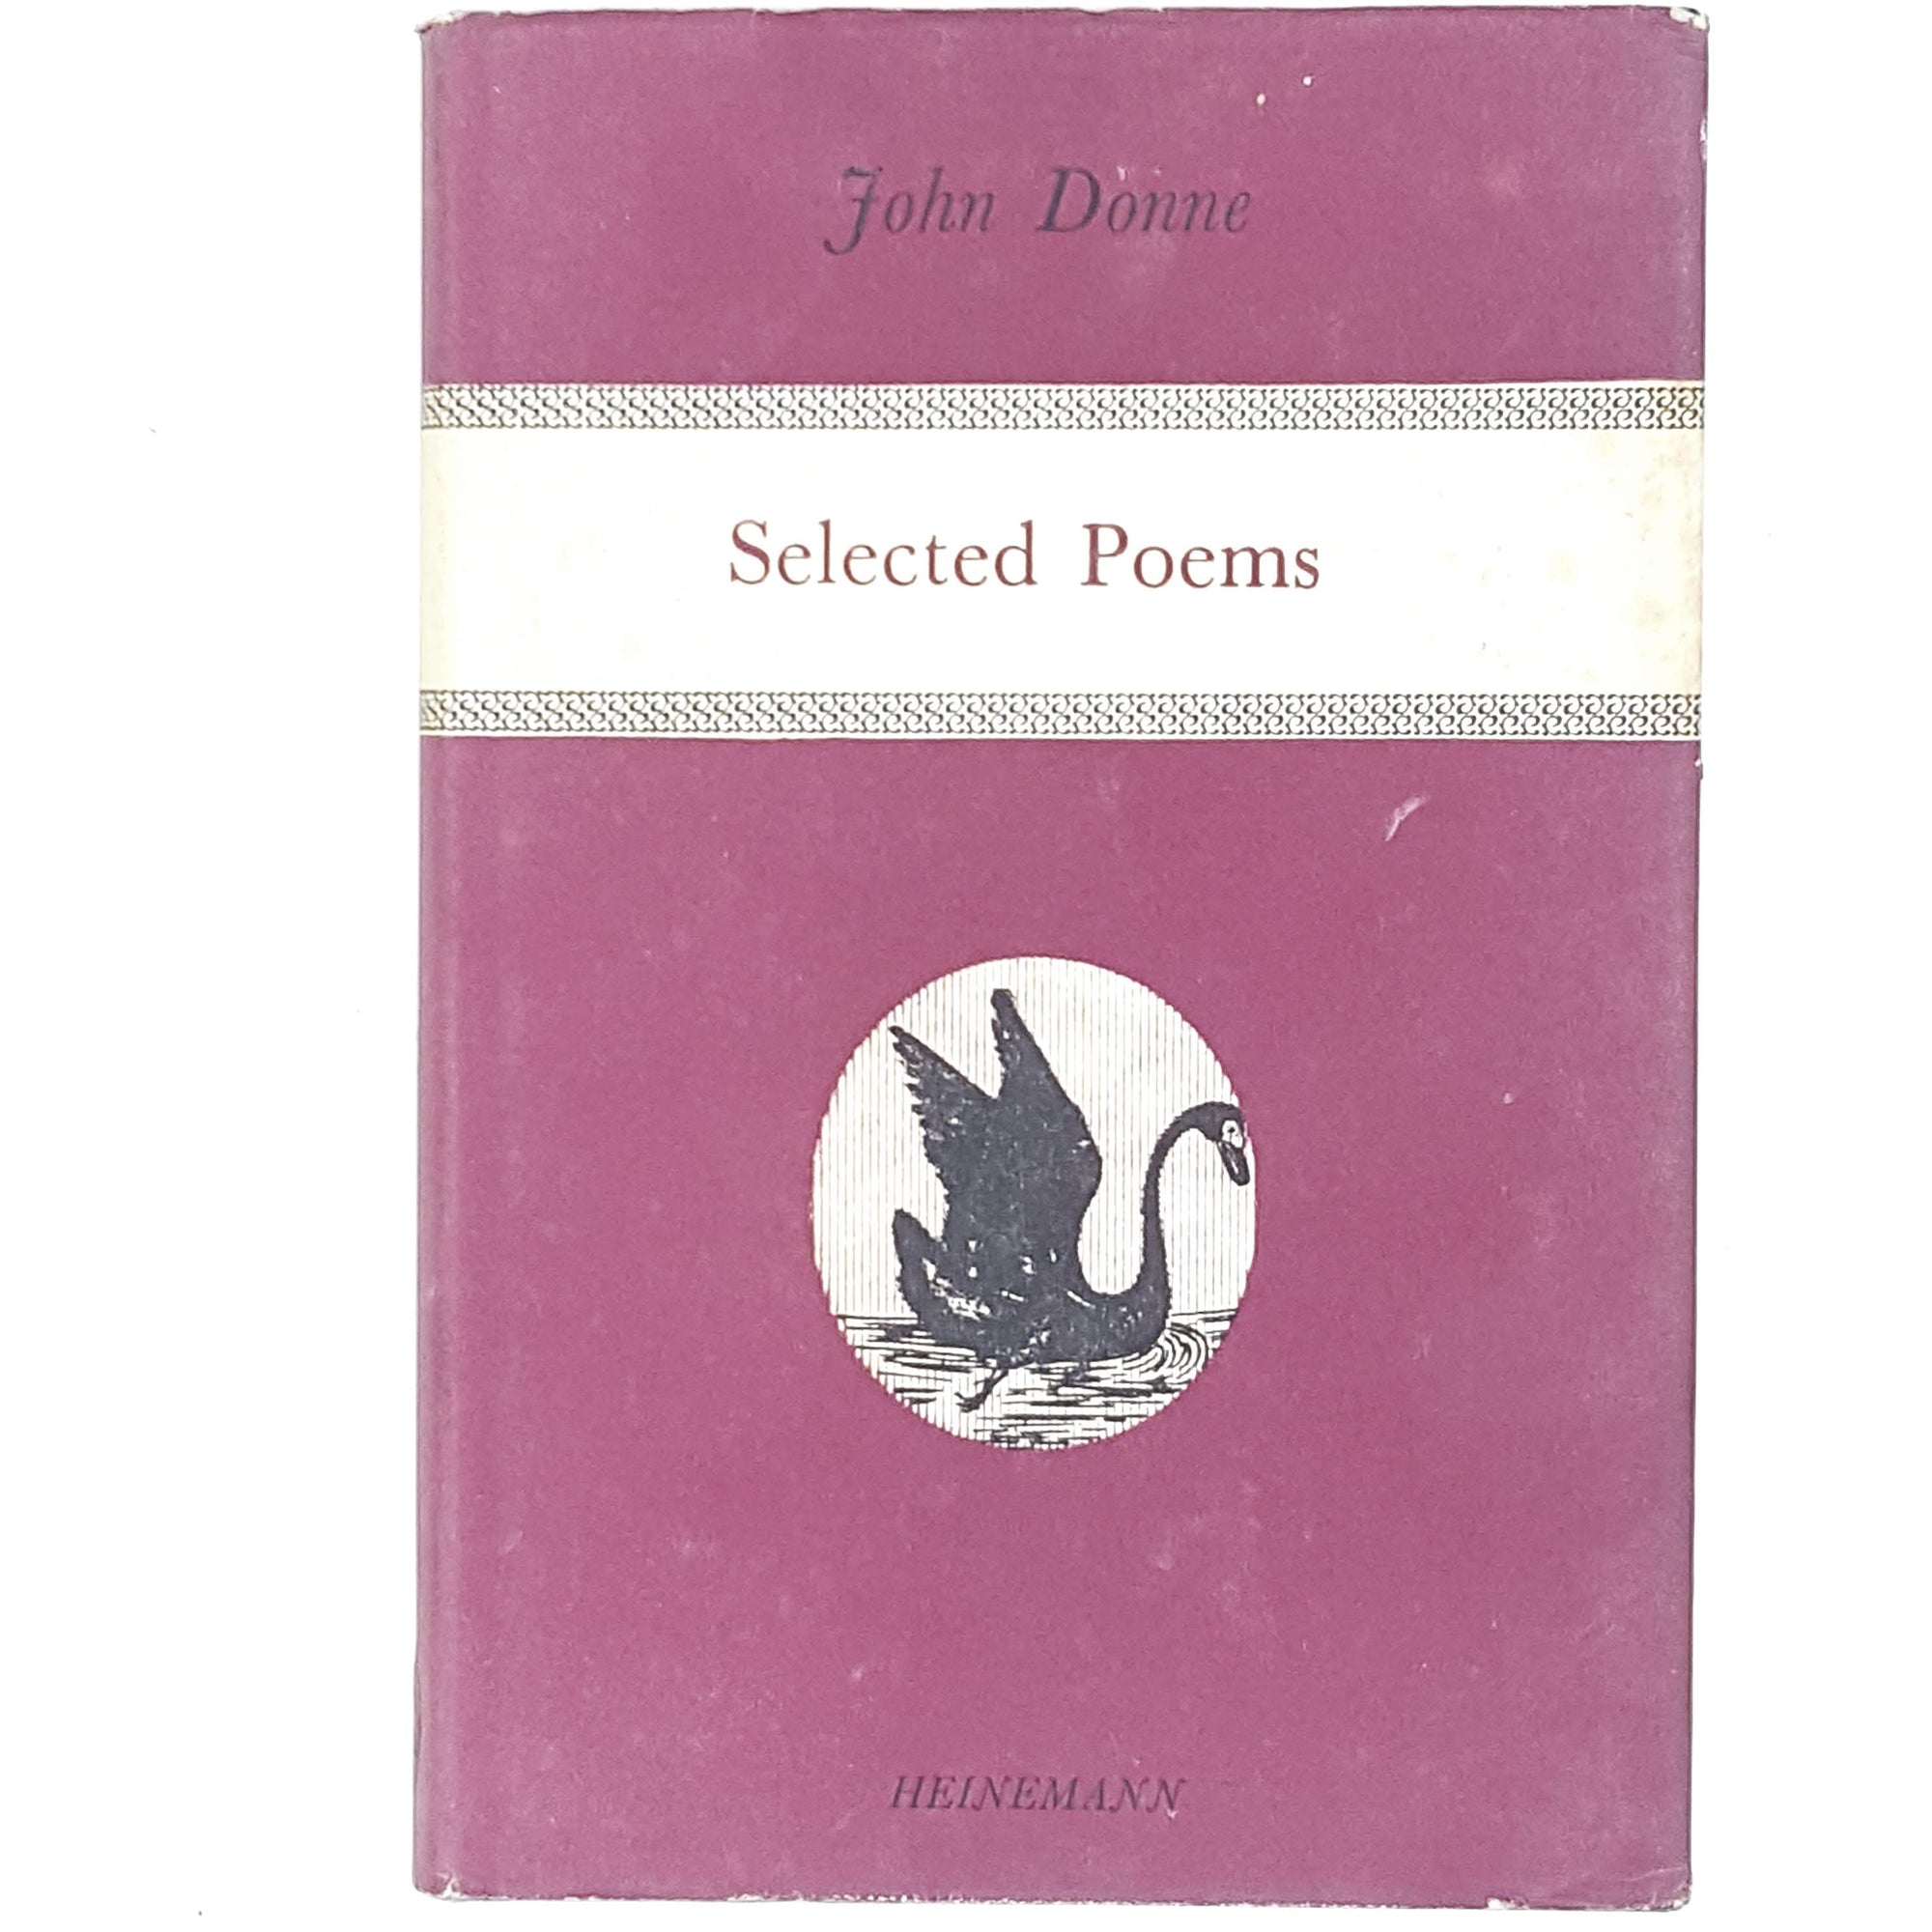 Vintage Poetry: Selected Poems by John Donne